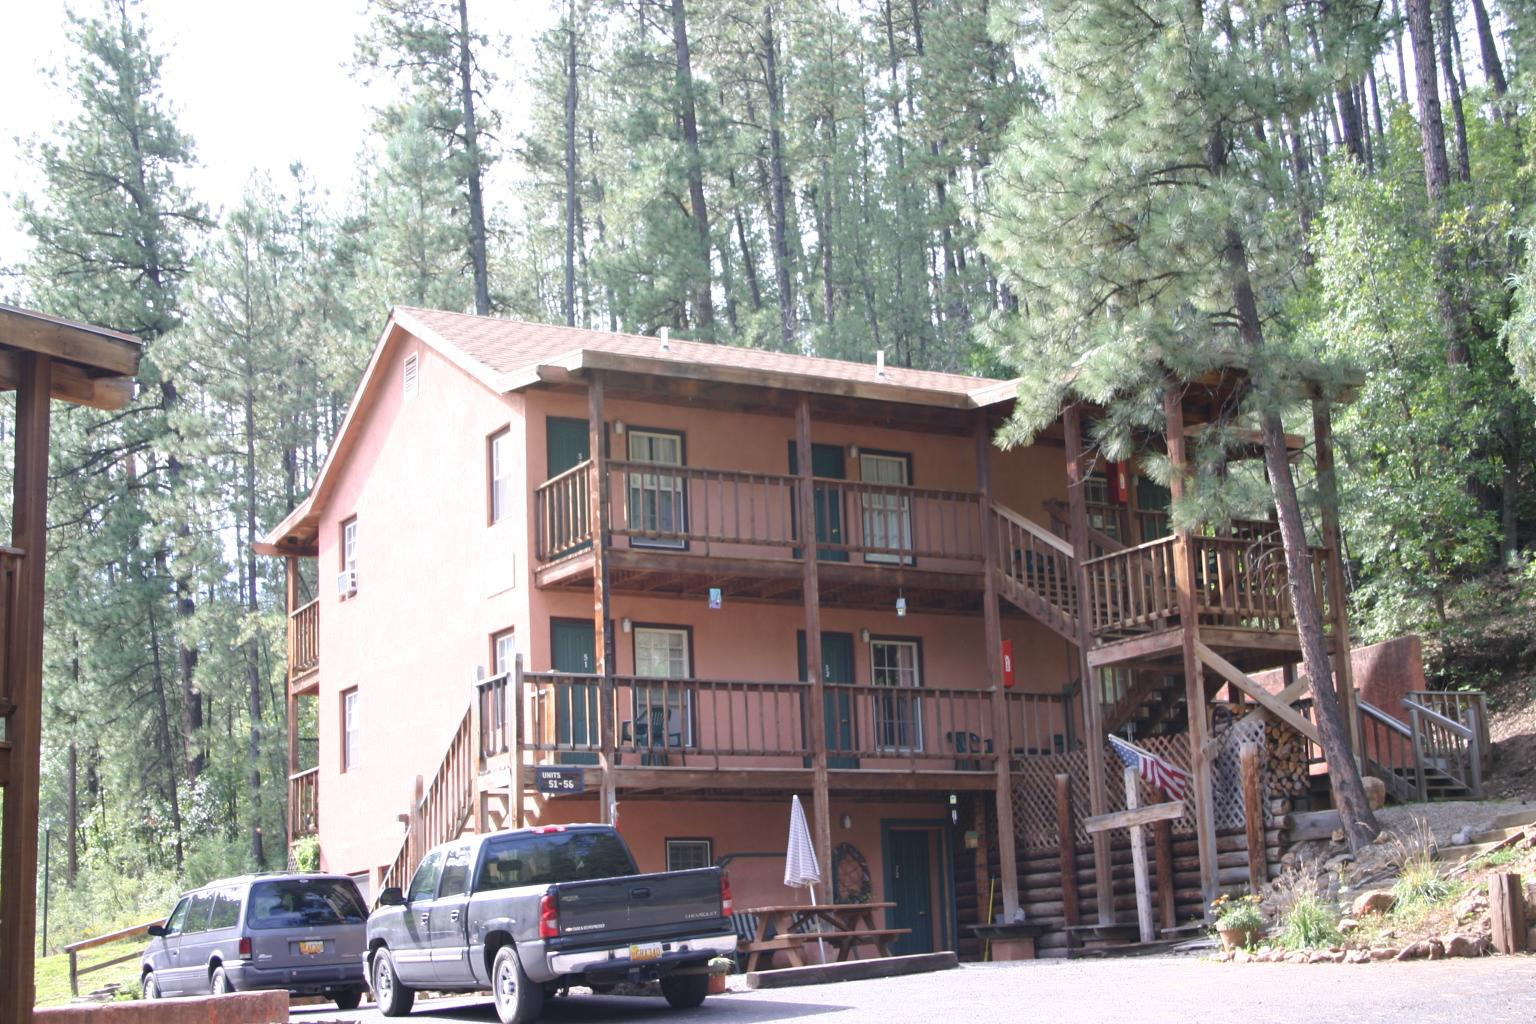 Canyon Creek Lodge